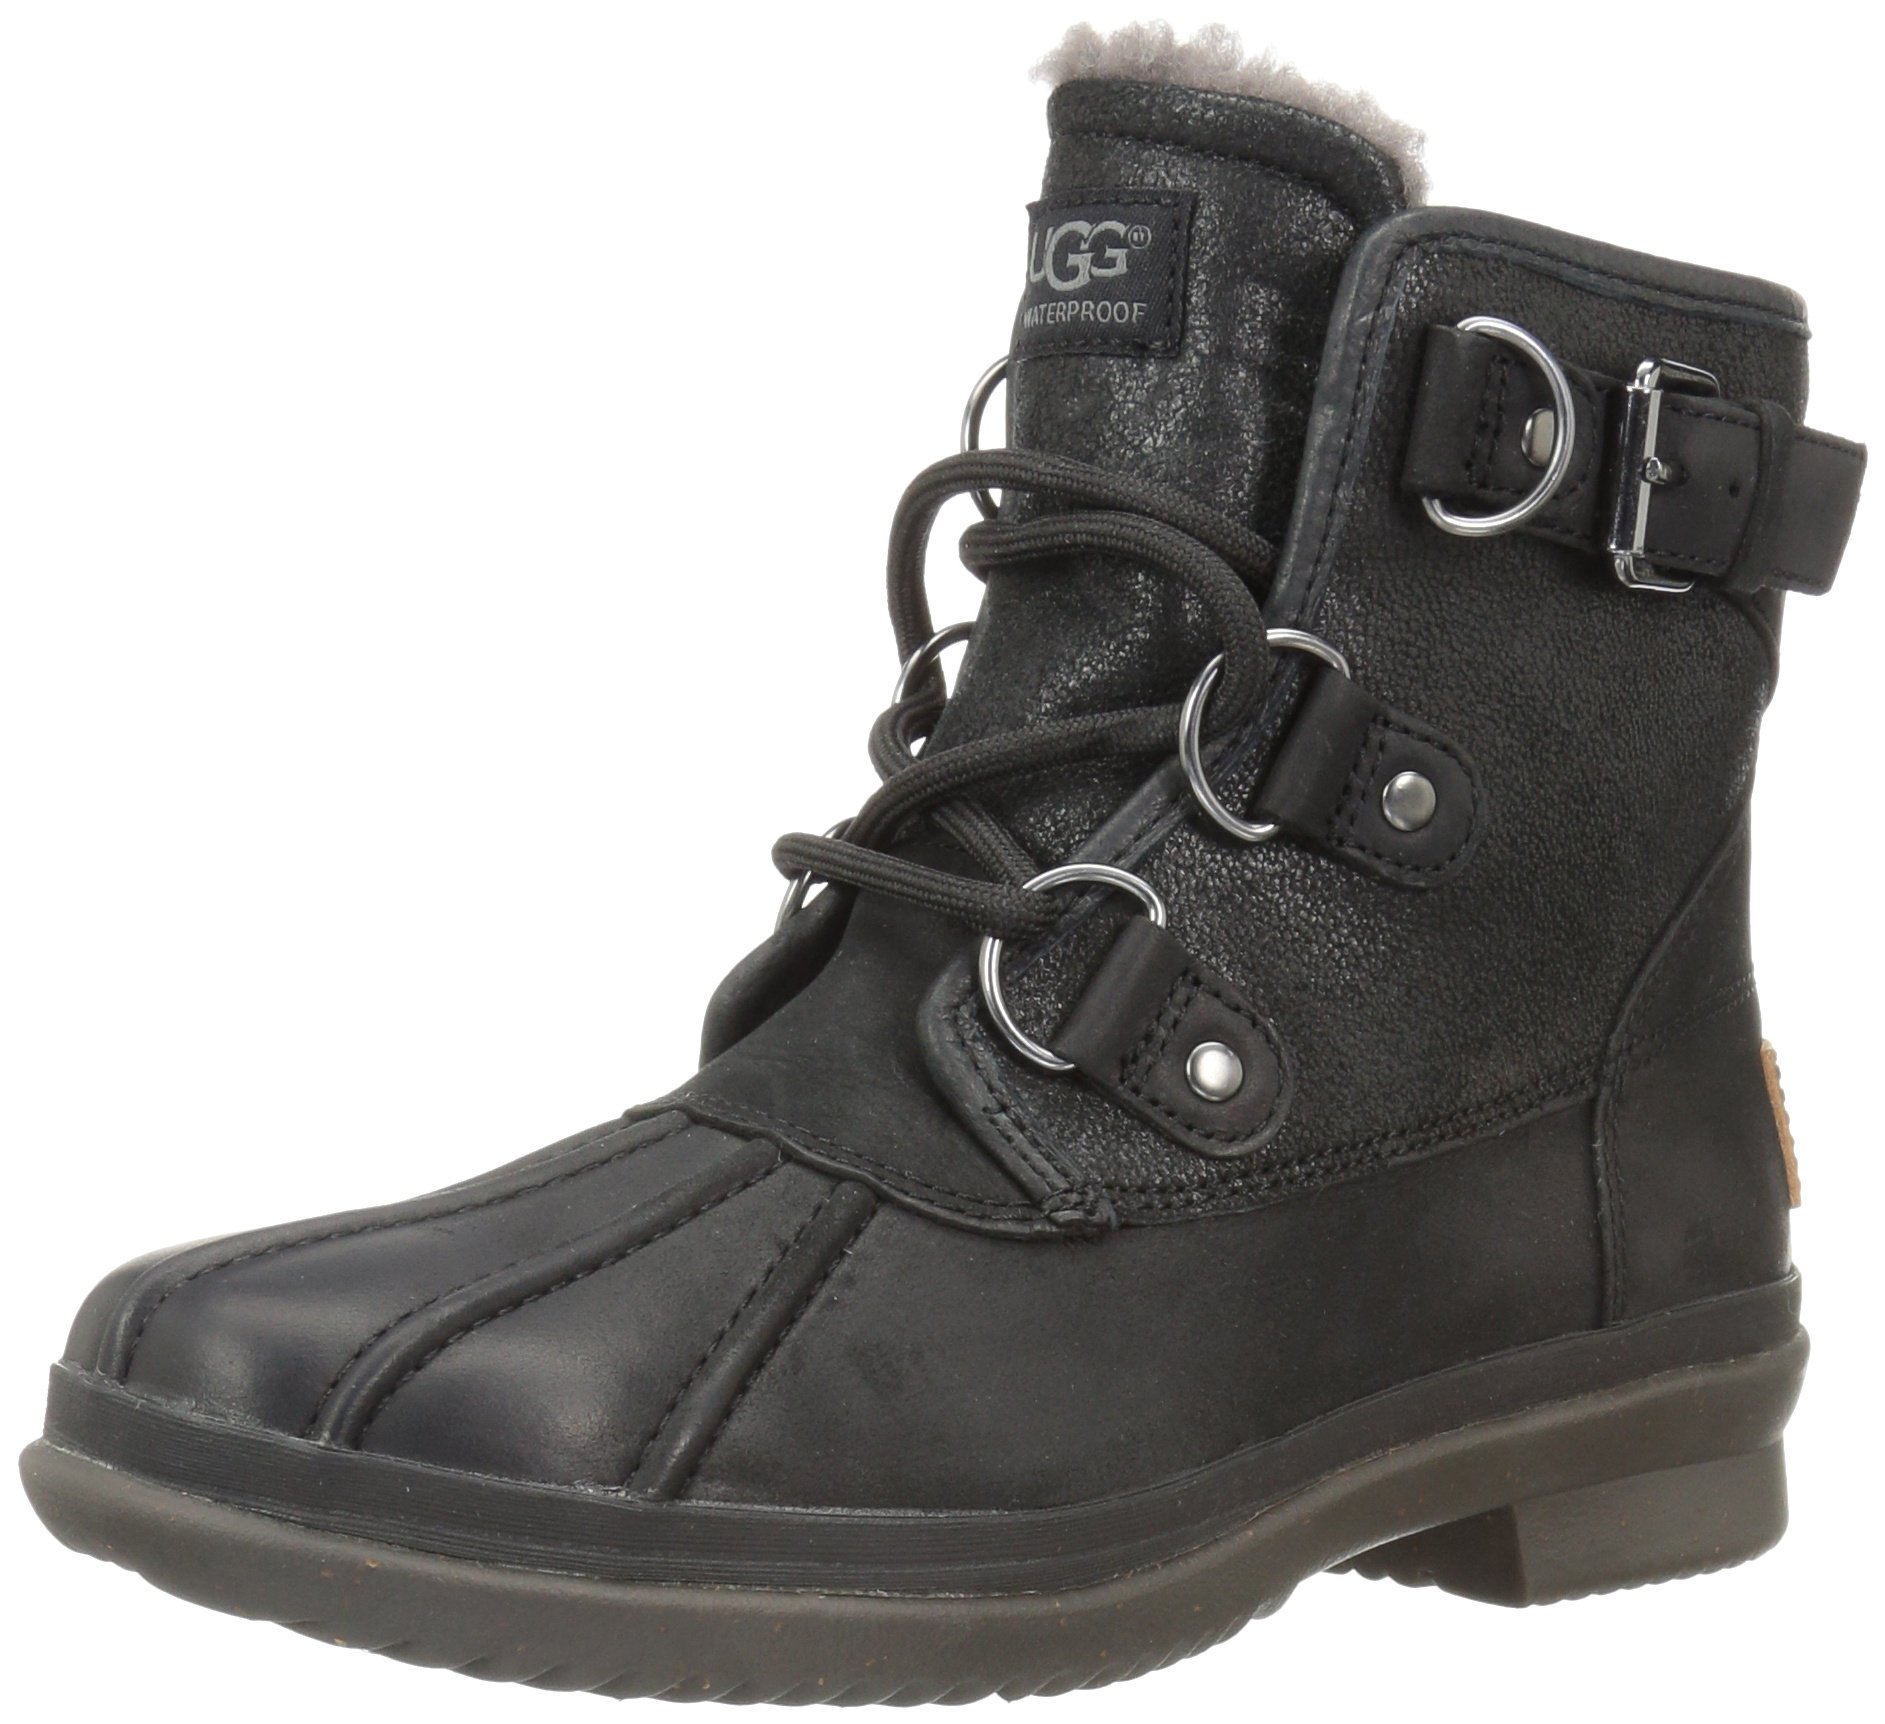 UGG Women's Cecile Winter Boot, Black, 5 B US